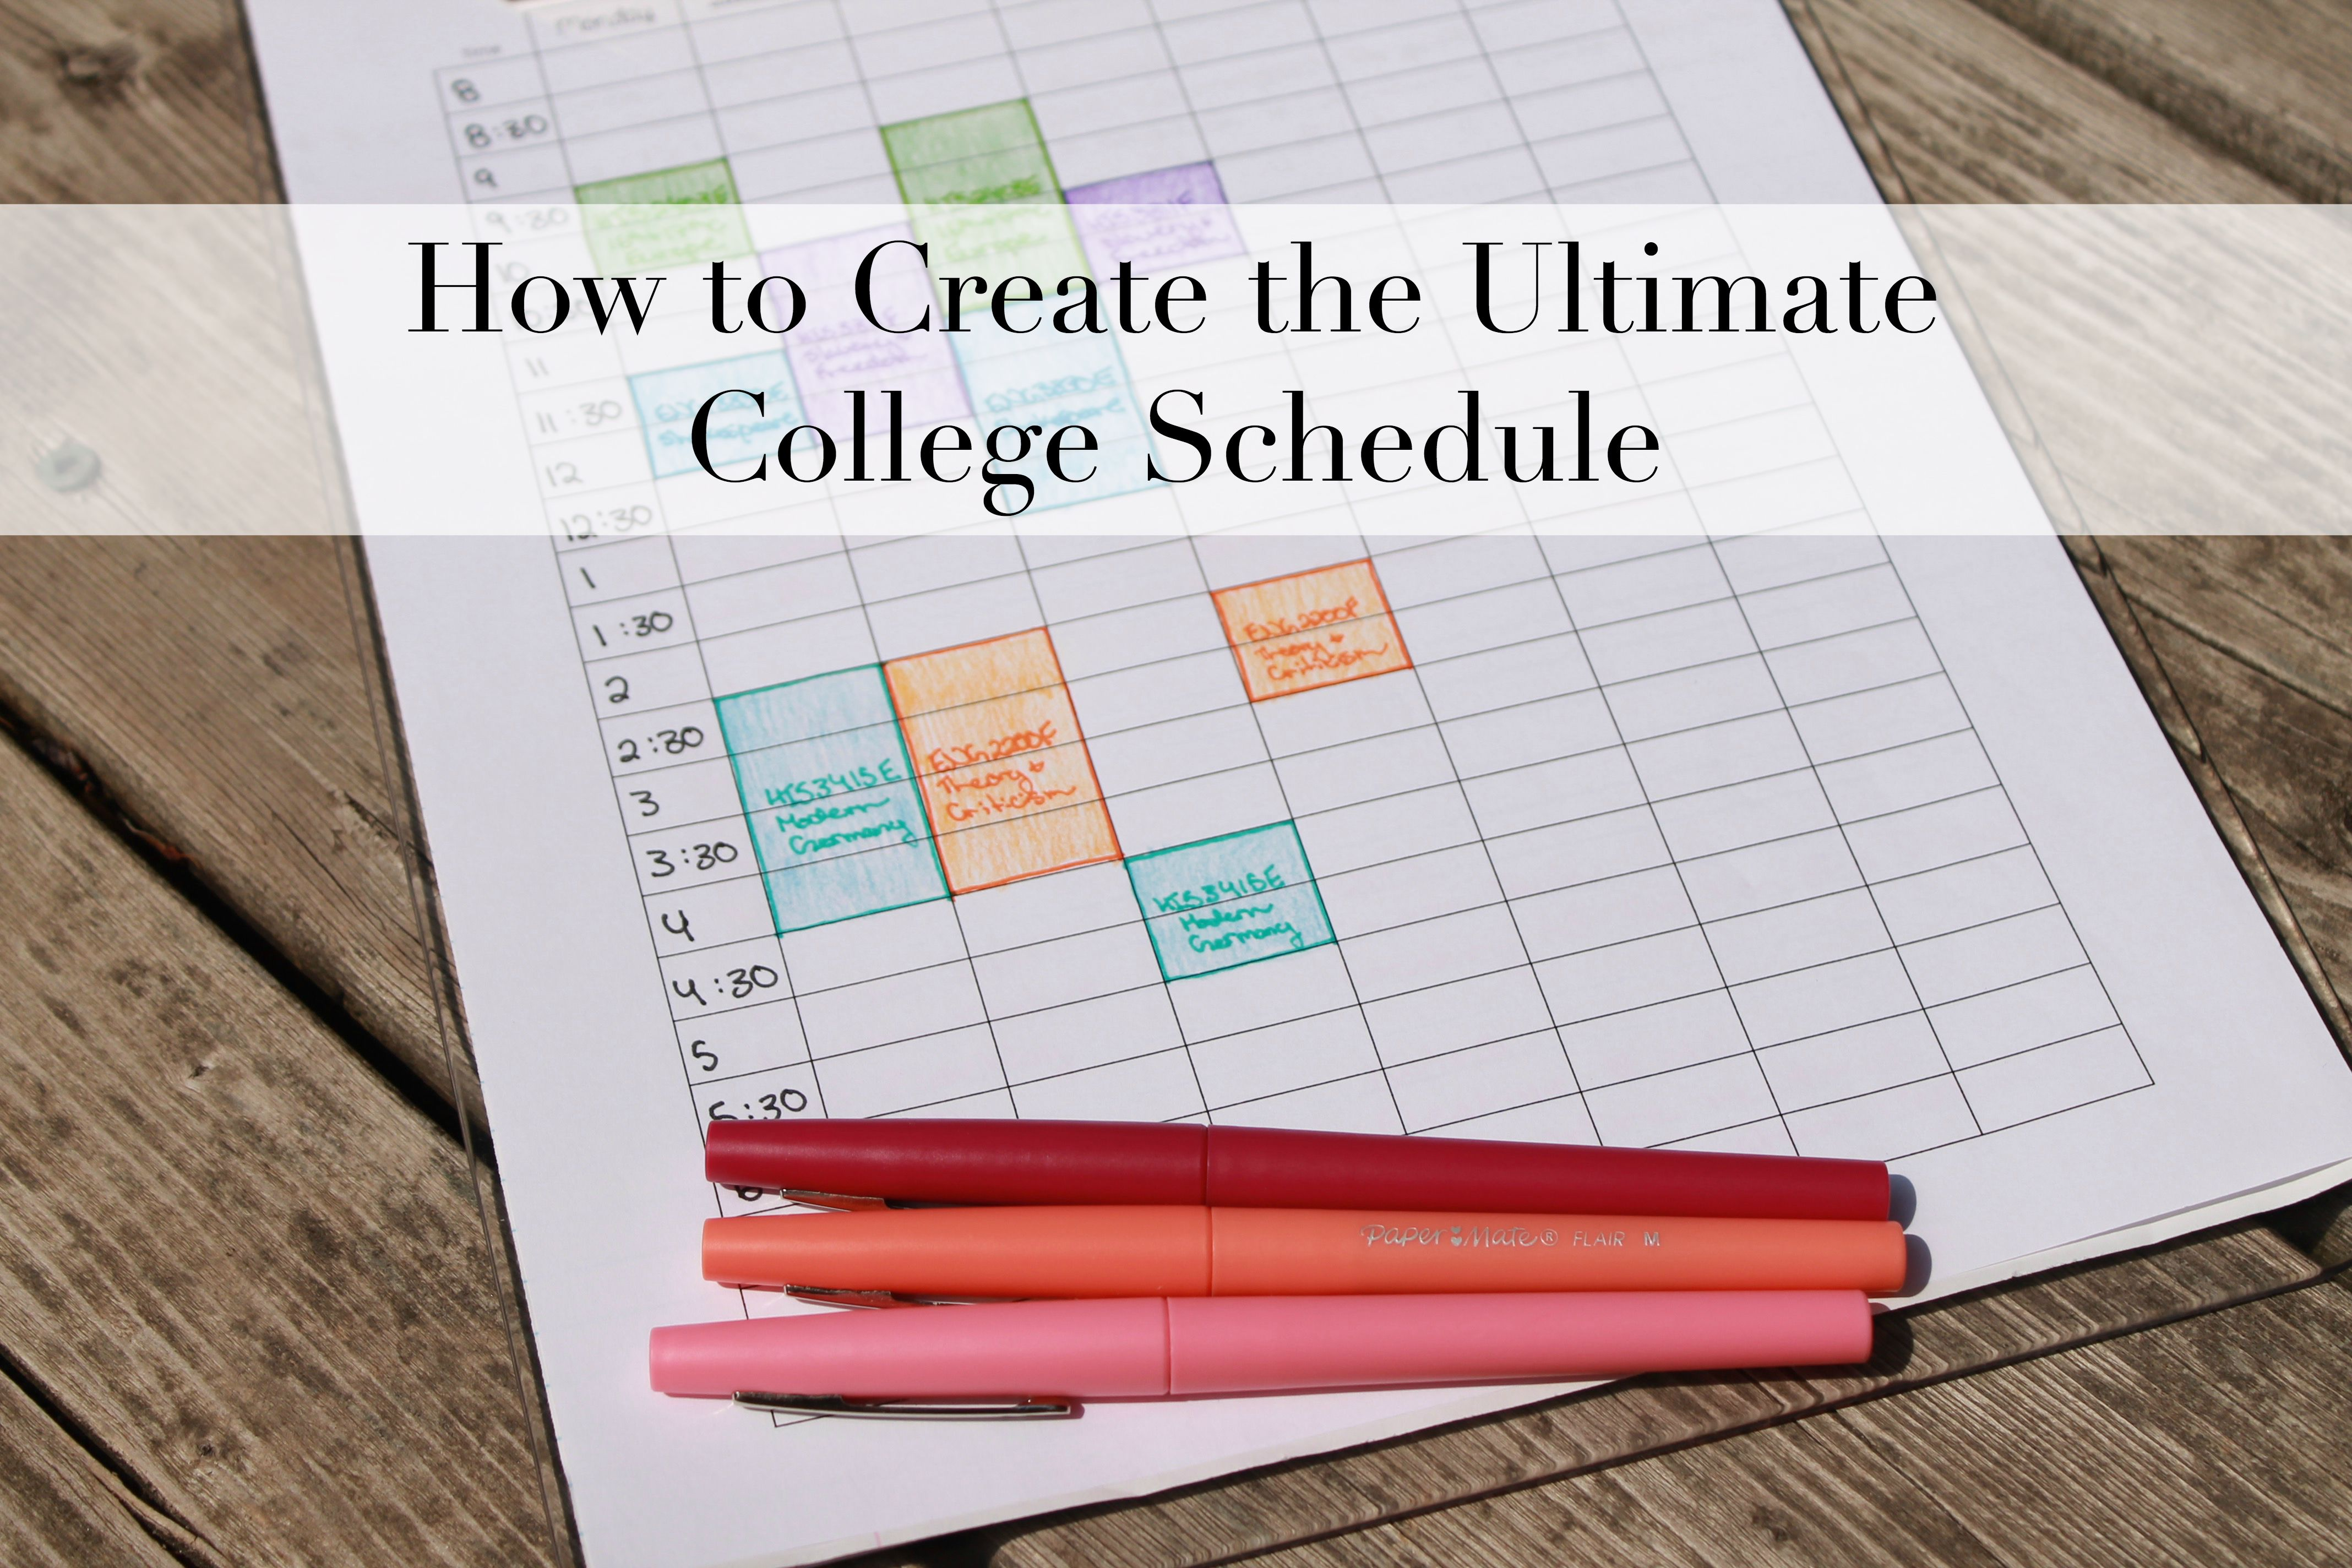 how to create the ultimate schedule in university and college